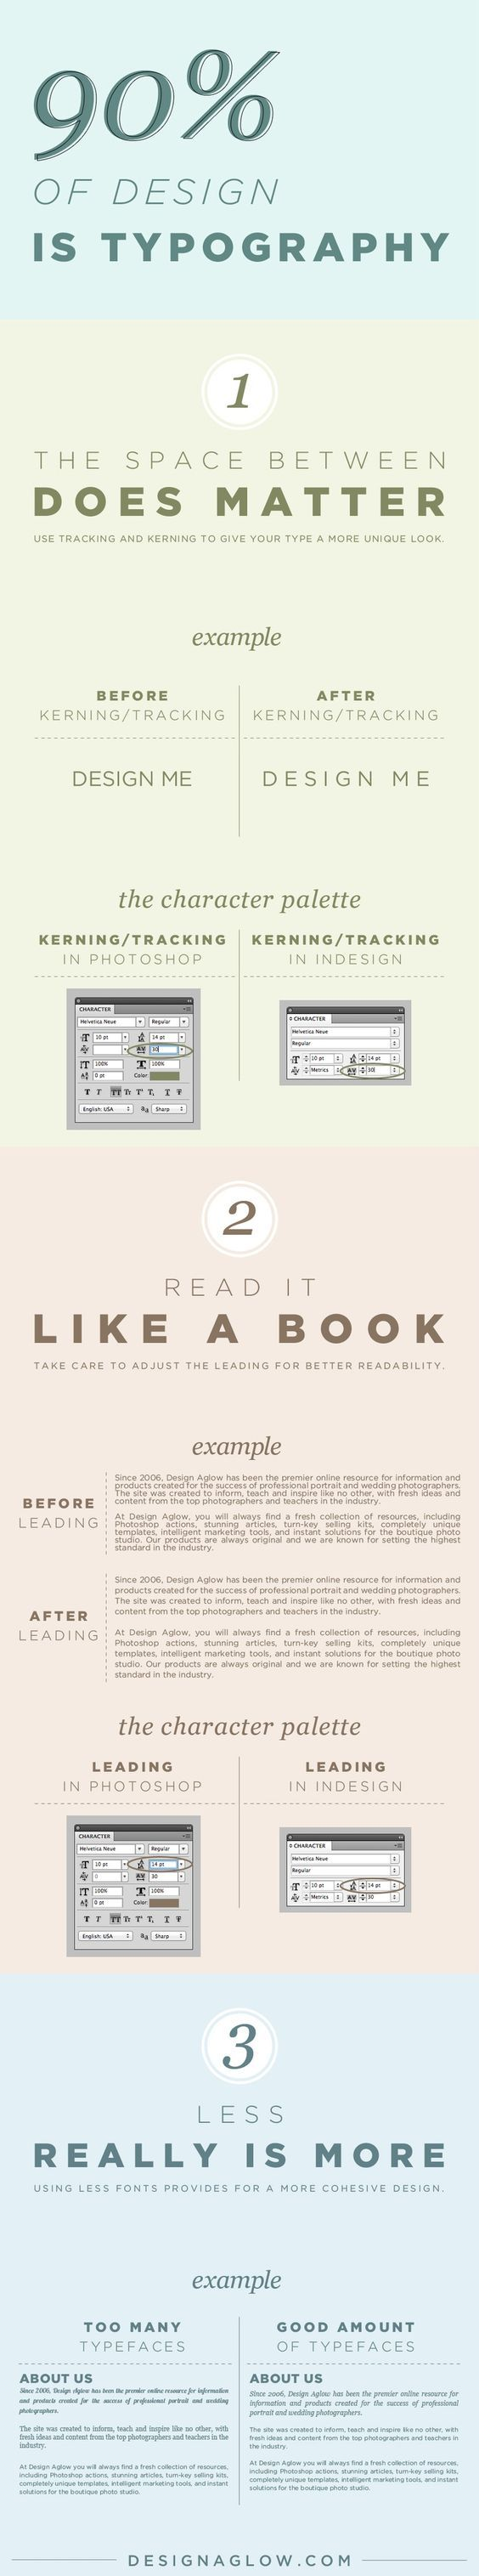 best cool yearbook ideas images on pinterest graph design